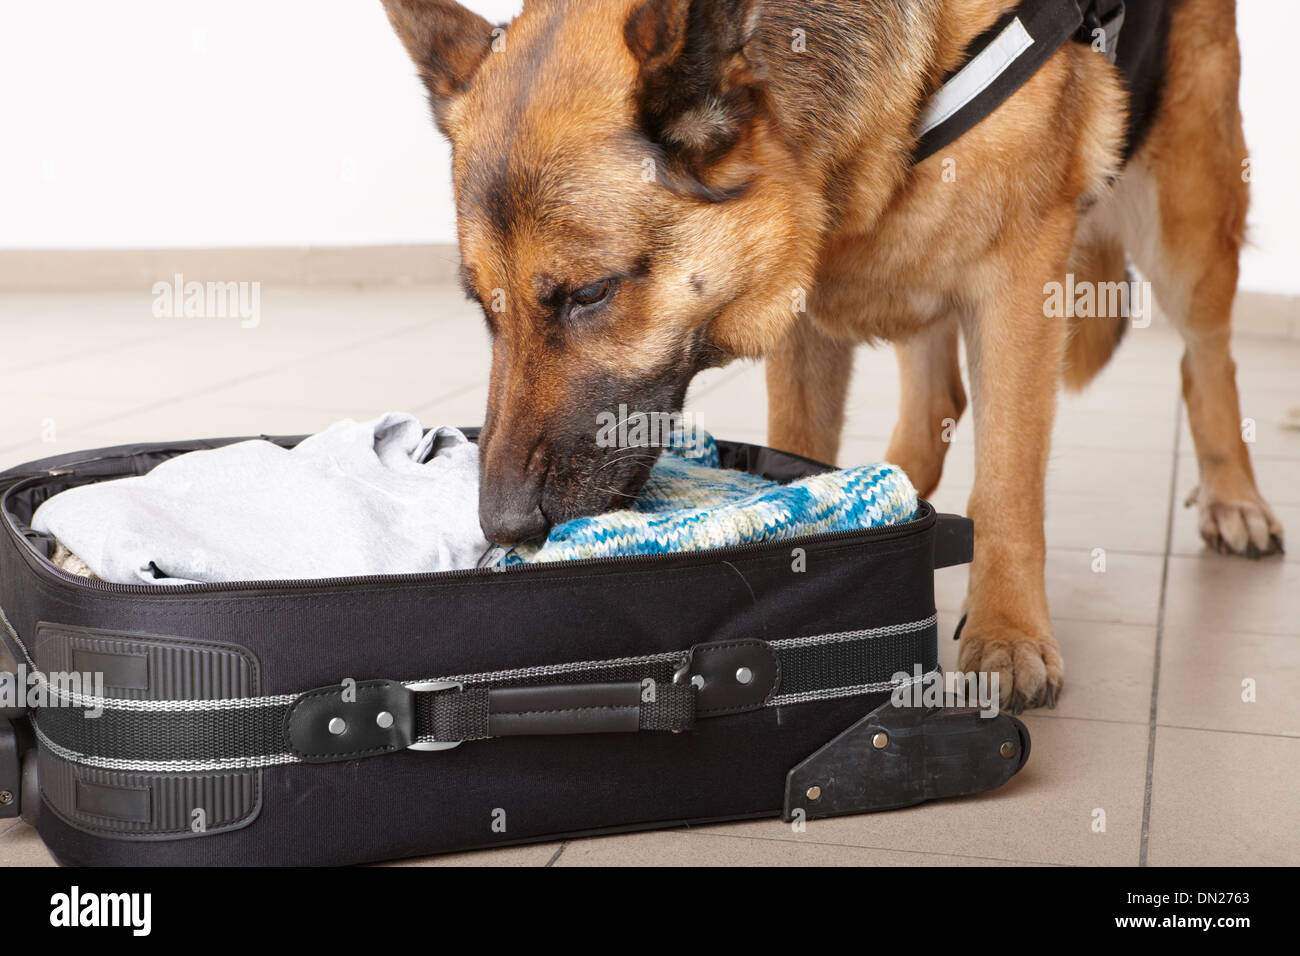 Airport canine. Dog sniffs out drugs or bomb in a luggage. - Stock Image